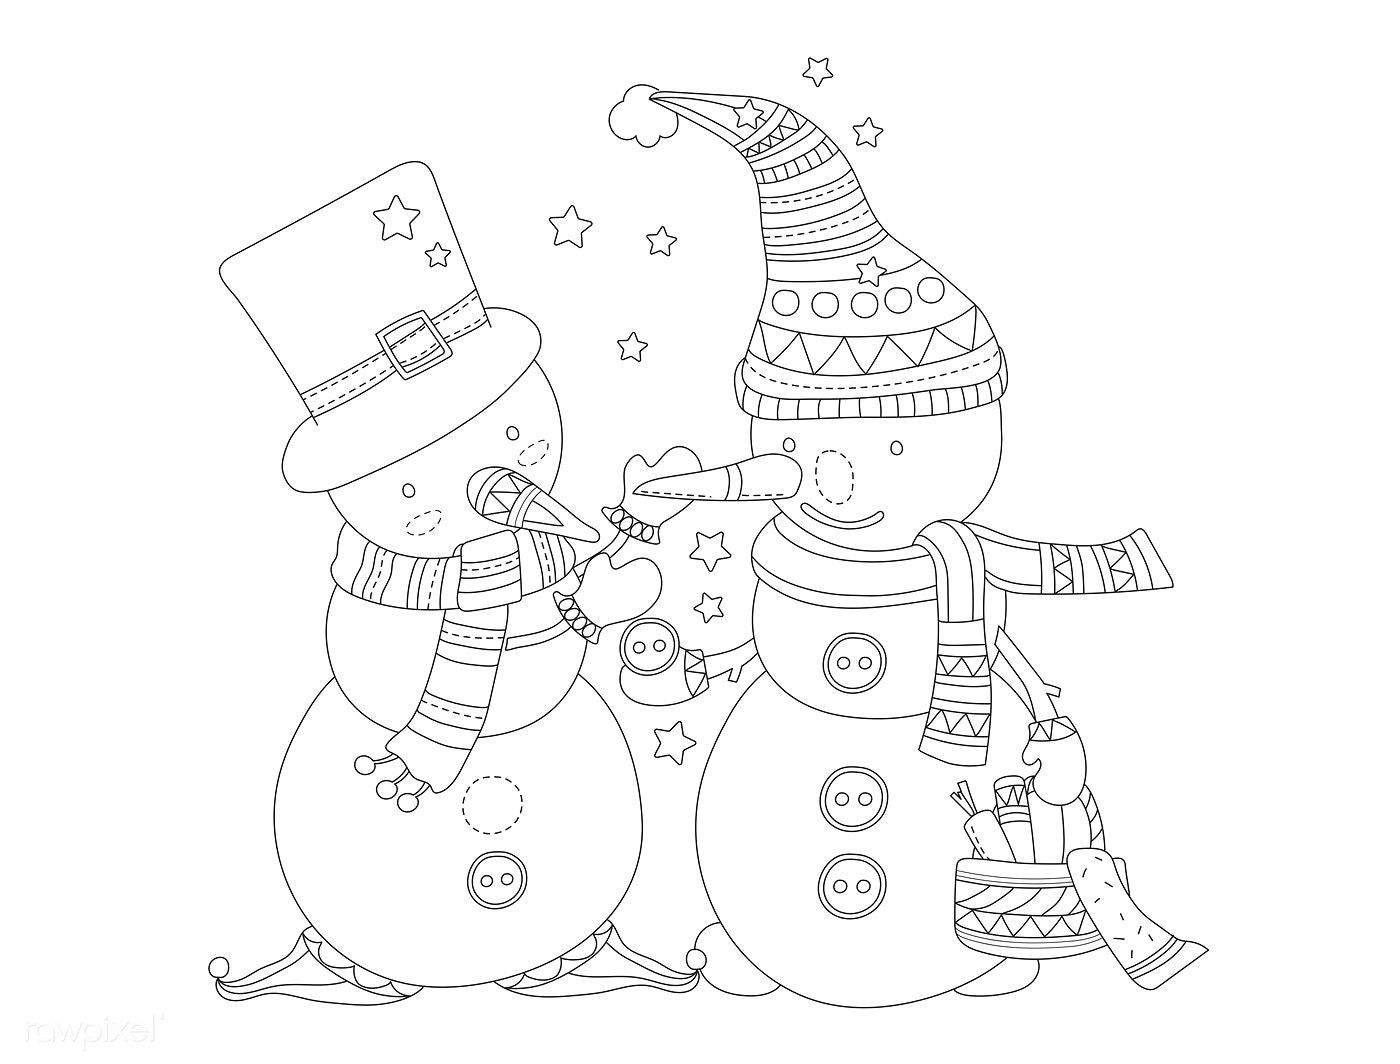 Snowman vector free image by Adult